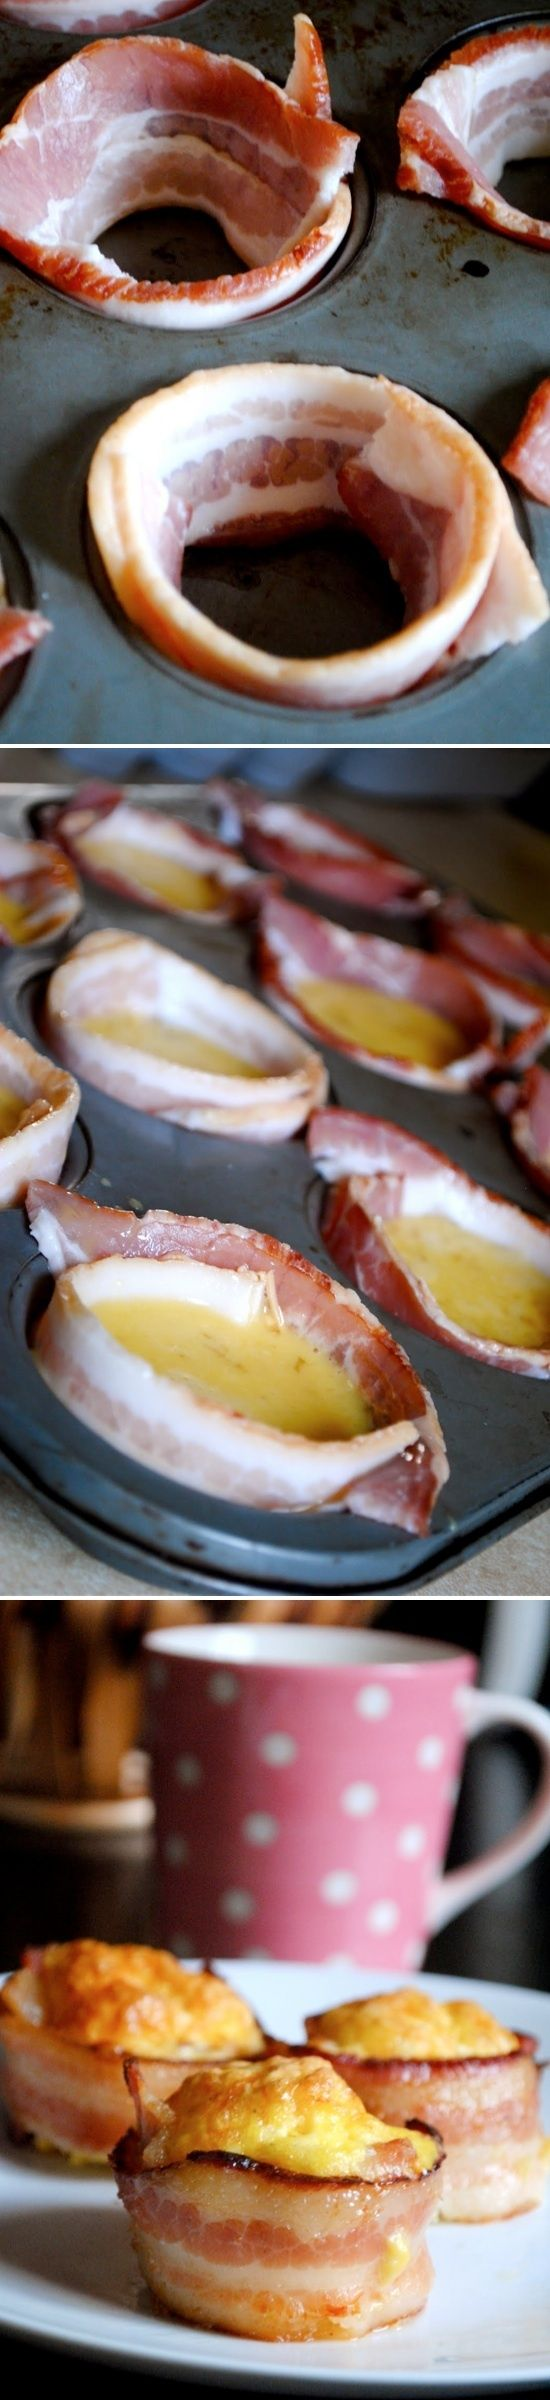 Mini Bacon Egg Cups -Yep, bite sized bacon and egg awesomeness. Simply wrap your muffin tins with bacon, fill with seasoned whipped eggs and bake at 350* for 30-35 minutes.